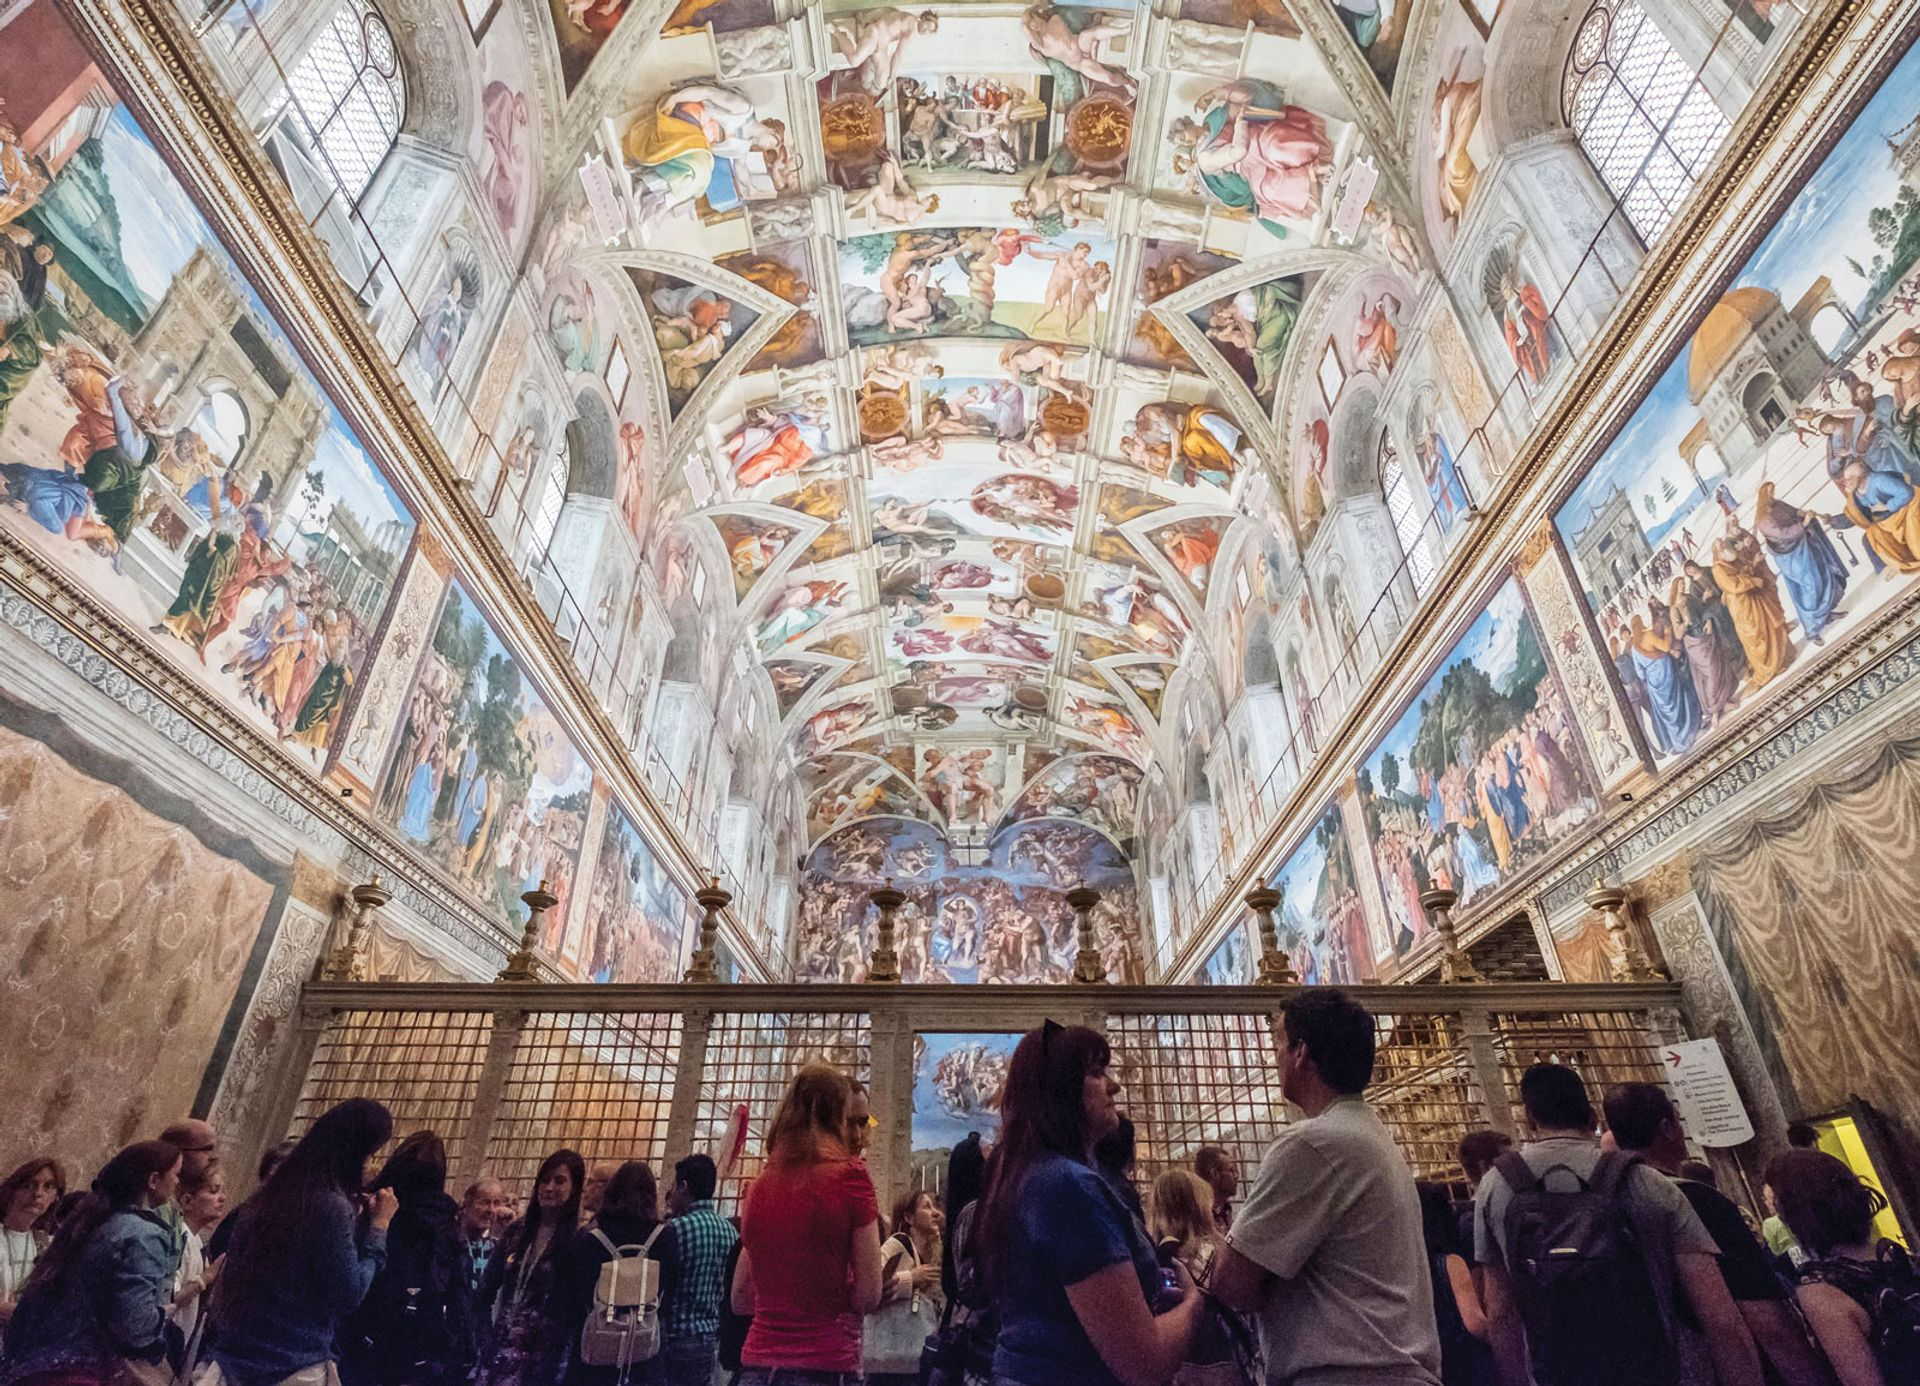 The event marked the tenth anniversary of the conservation services that allow the Sistine Chapel to go on receiving six million visitors a year Urbanmyth/Alamy